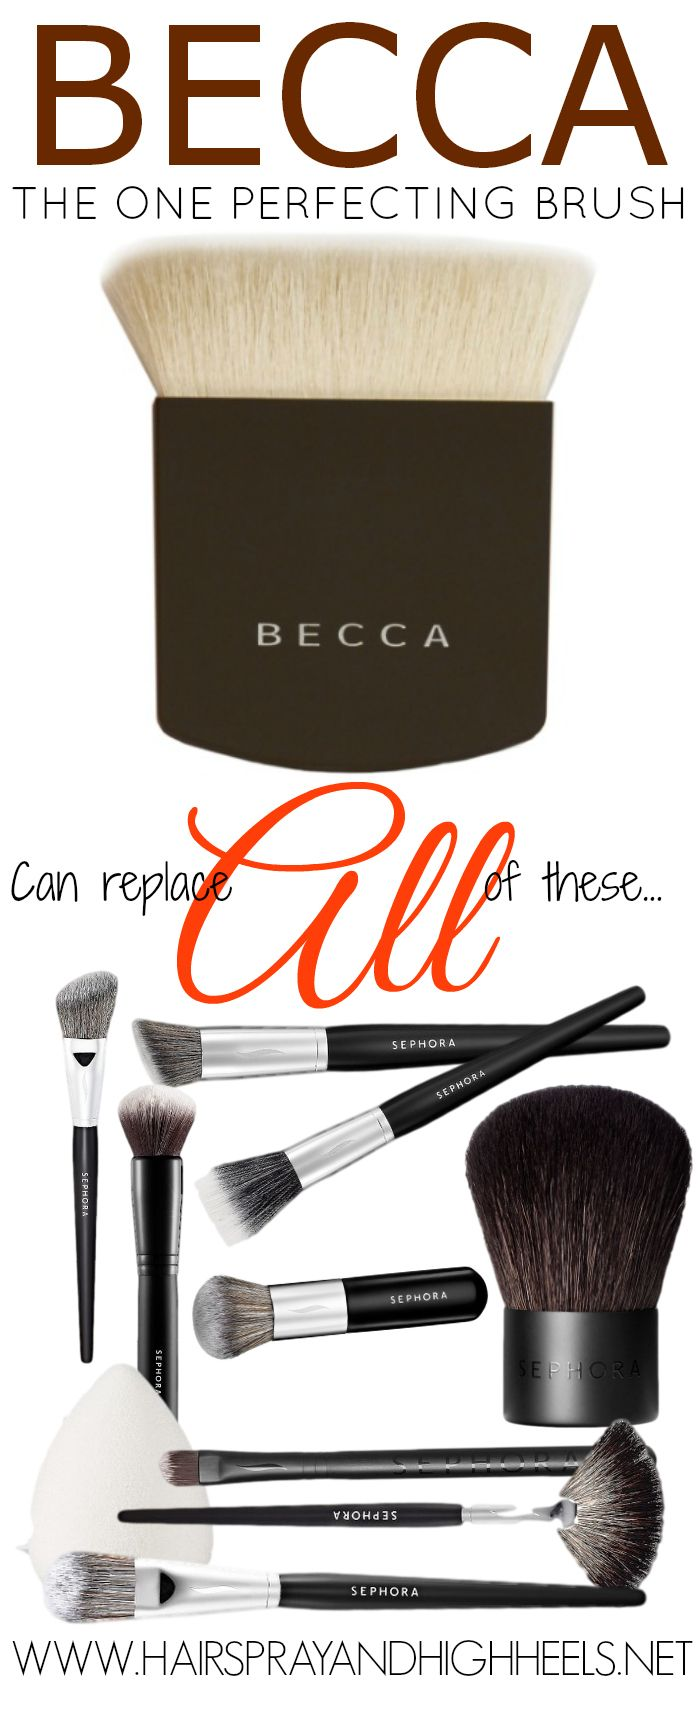 Becca The One Perfecting Brush Review via www.hairsprayandhighheels.com